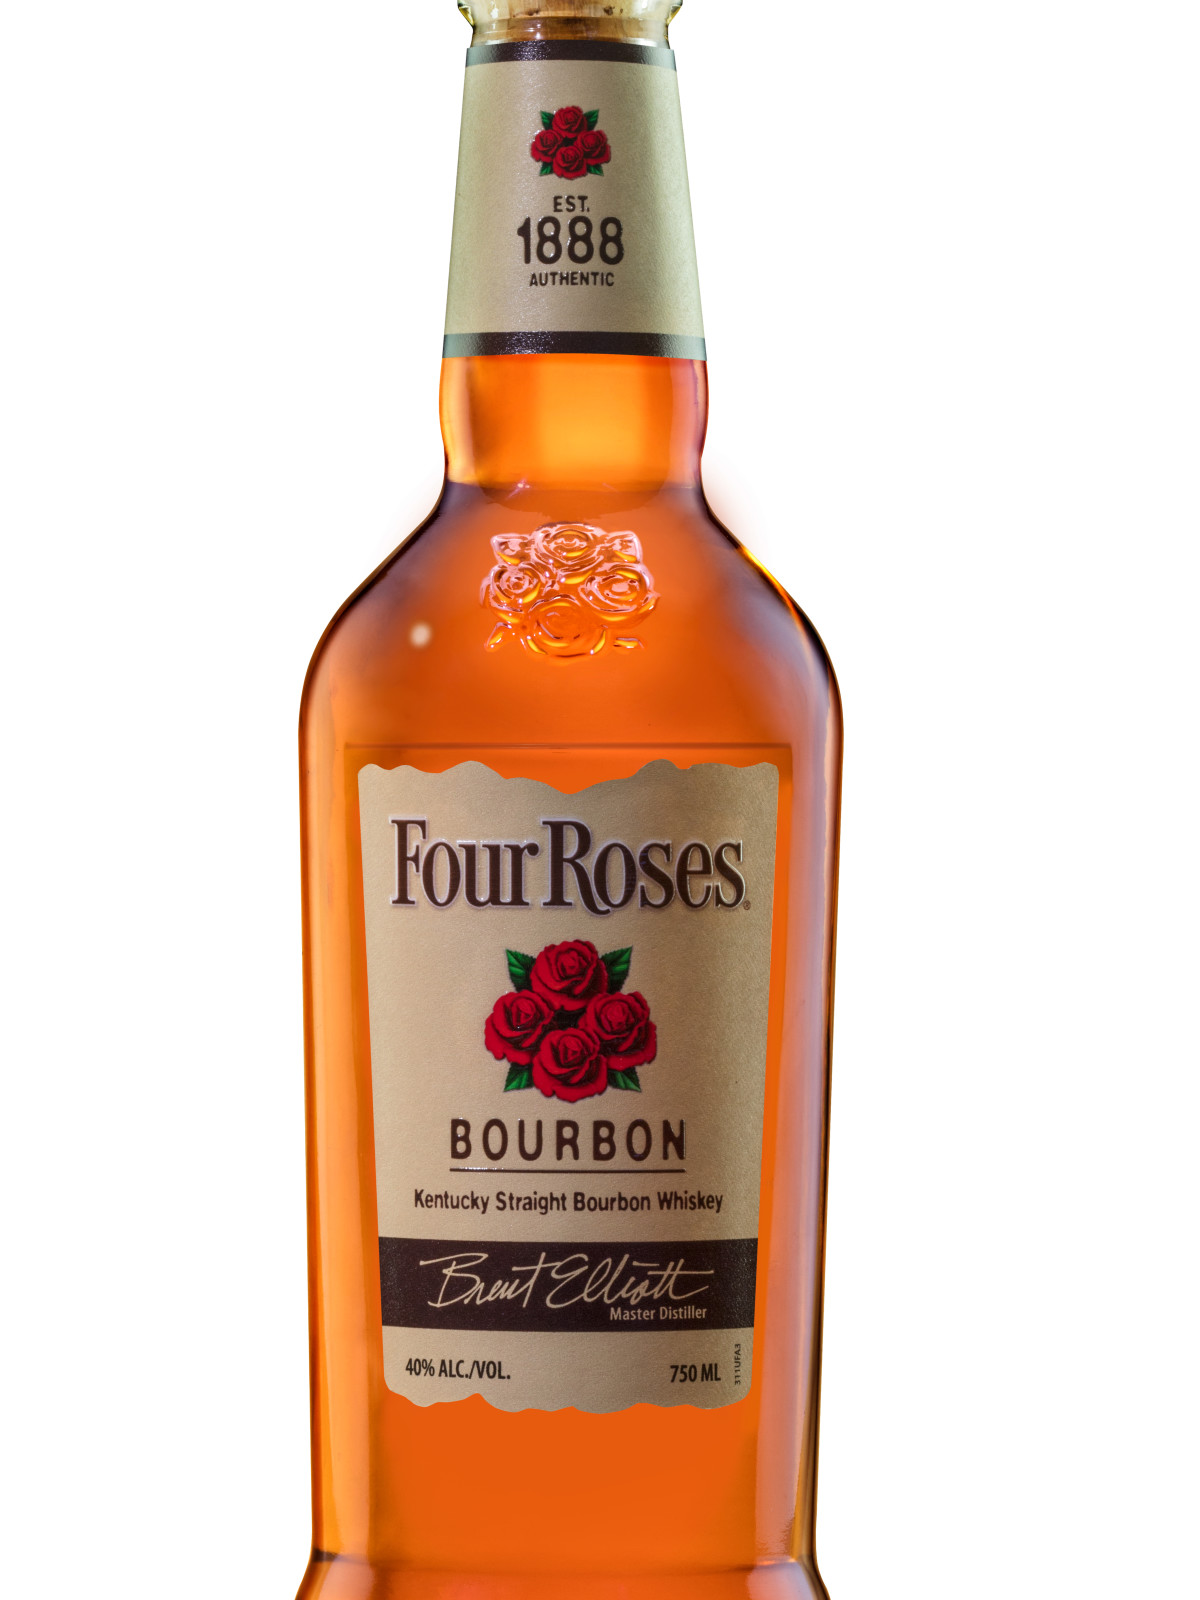 Bottle of Four Roses bourbon